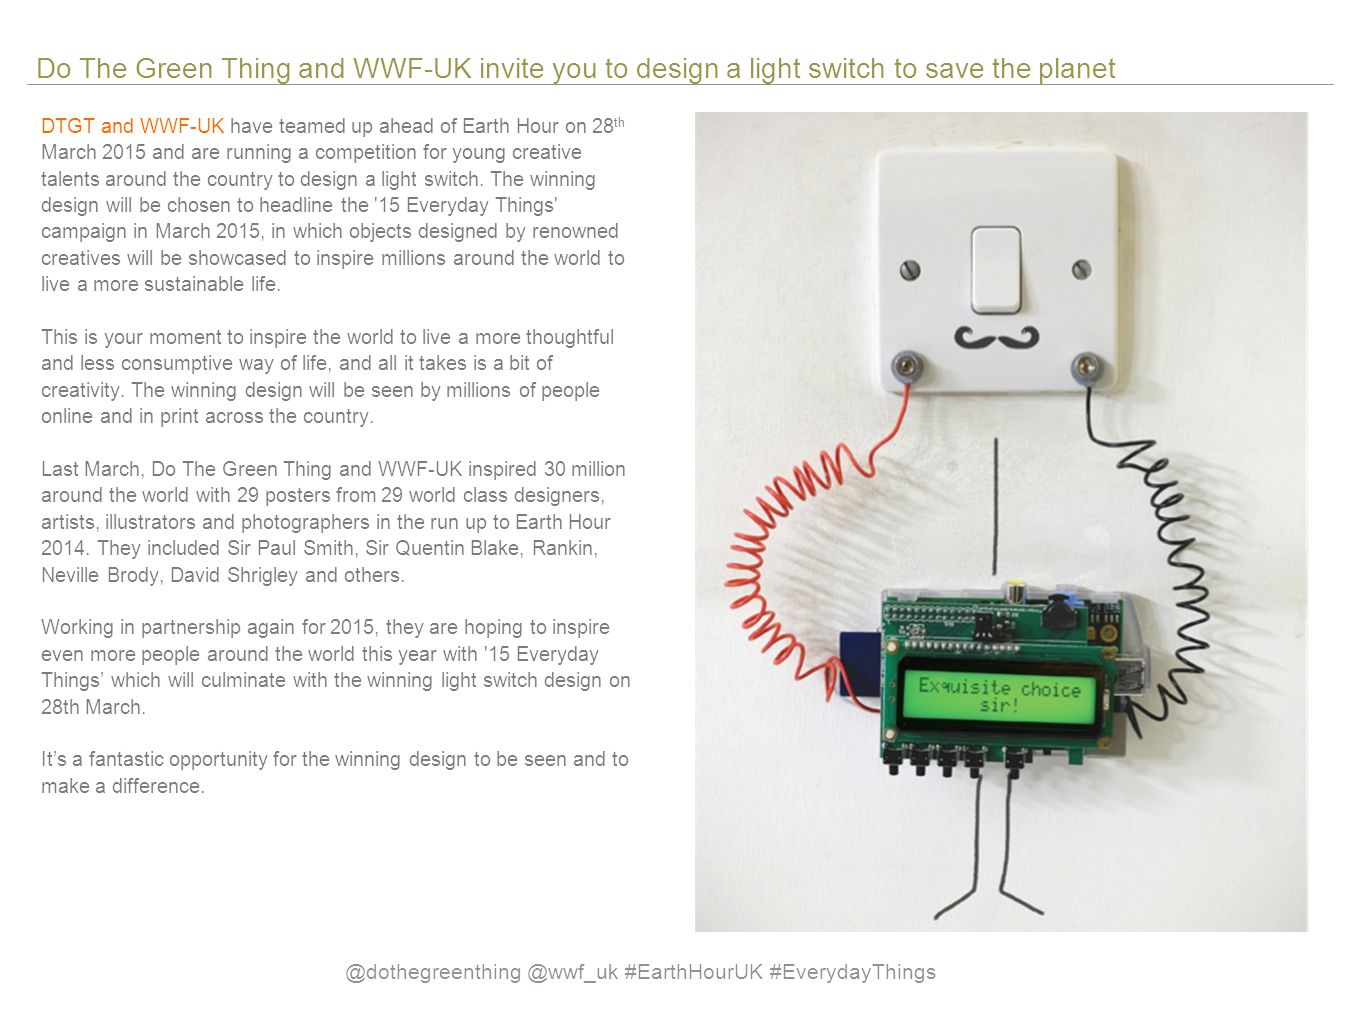 Do The Green Thing and WWF-UK invite you to design a light switch to save the planet DTGT and WWF-UK have teamed up ahead of Earth Hour on 28 th March